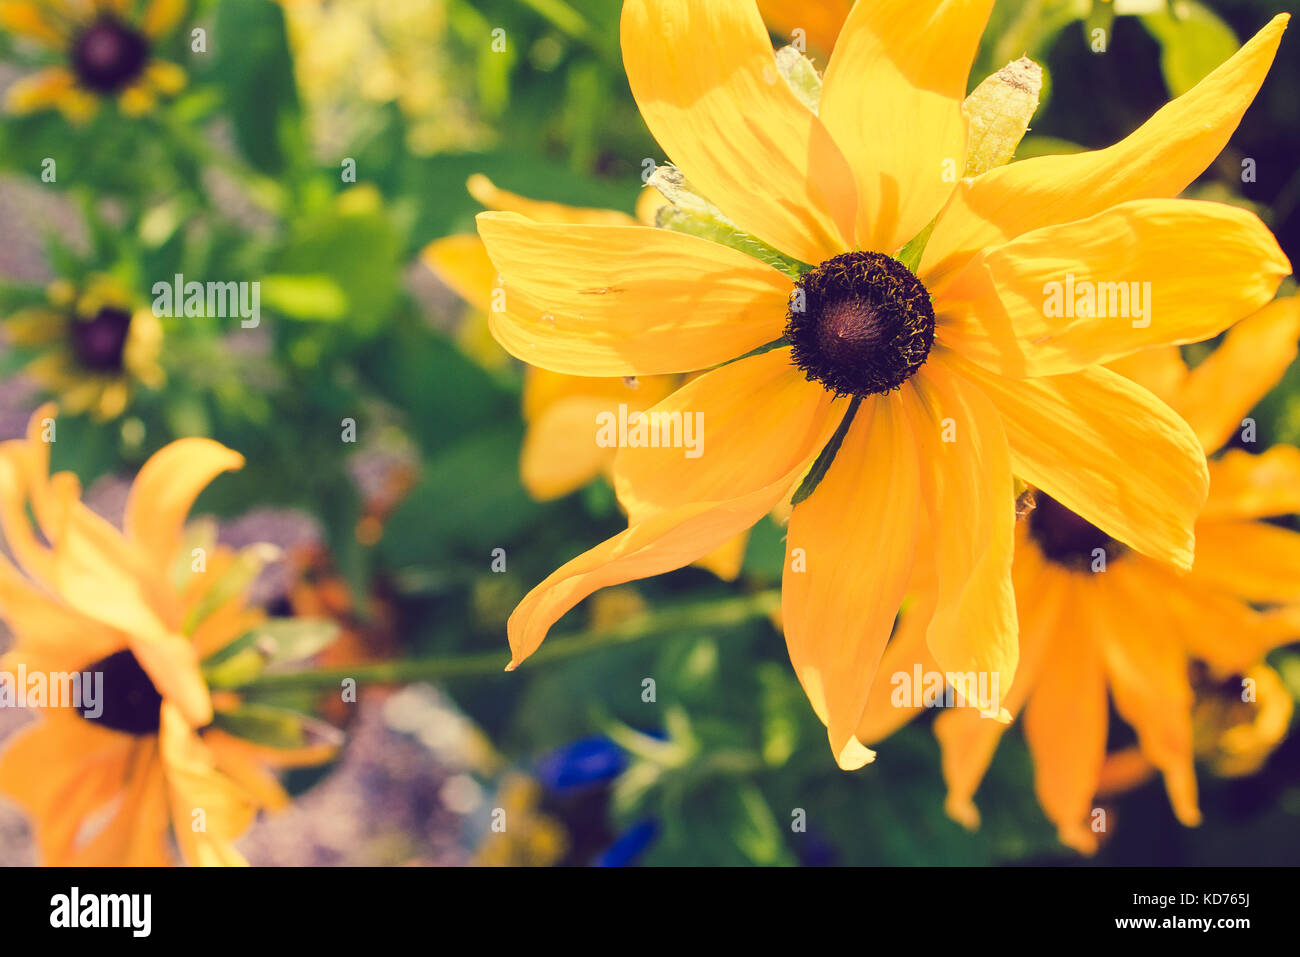 Yellow Rudbeckia with brown centers. Also called Coneflowers, Black-eyed-Susans, Leuchtender Sonnenhut - Stock Image